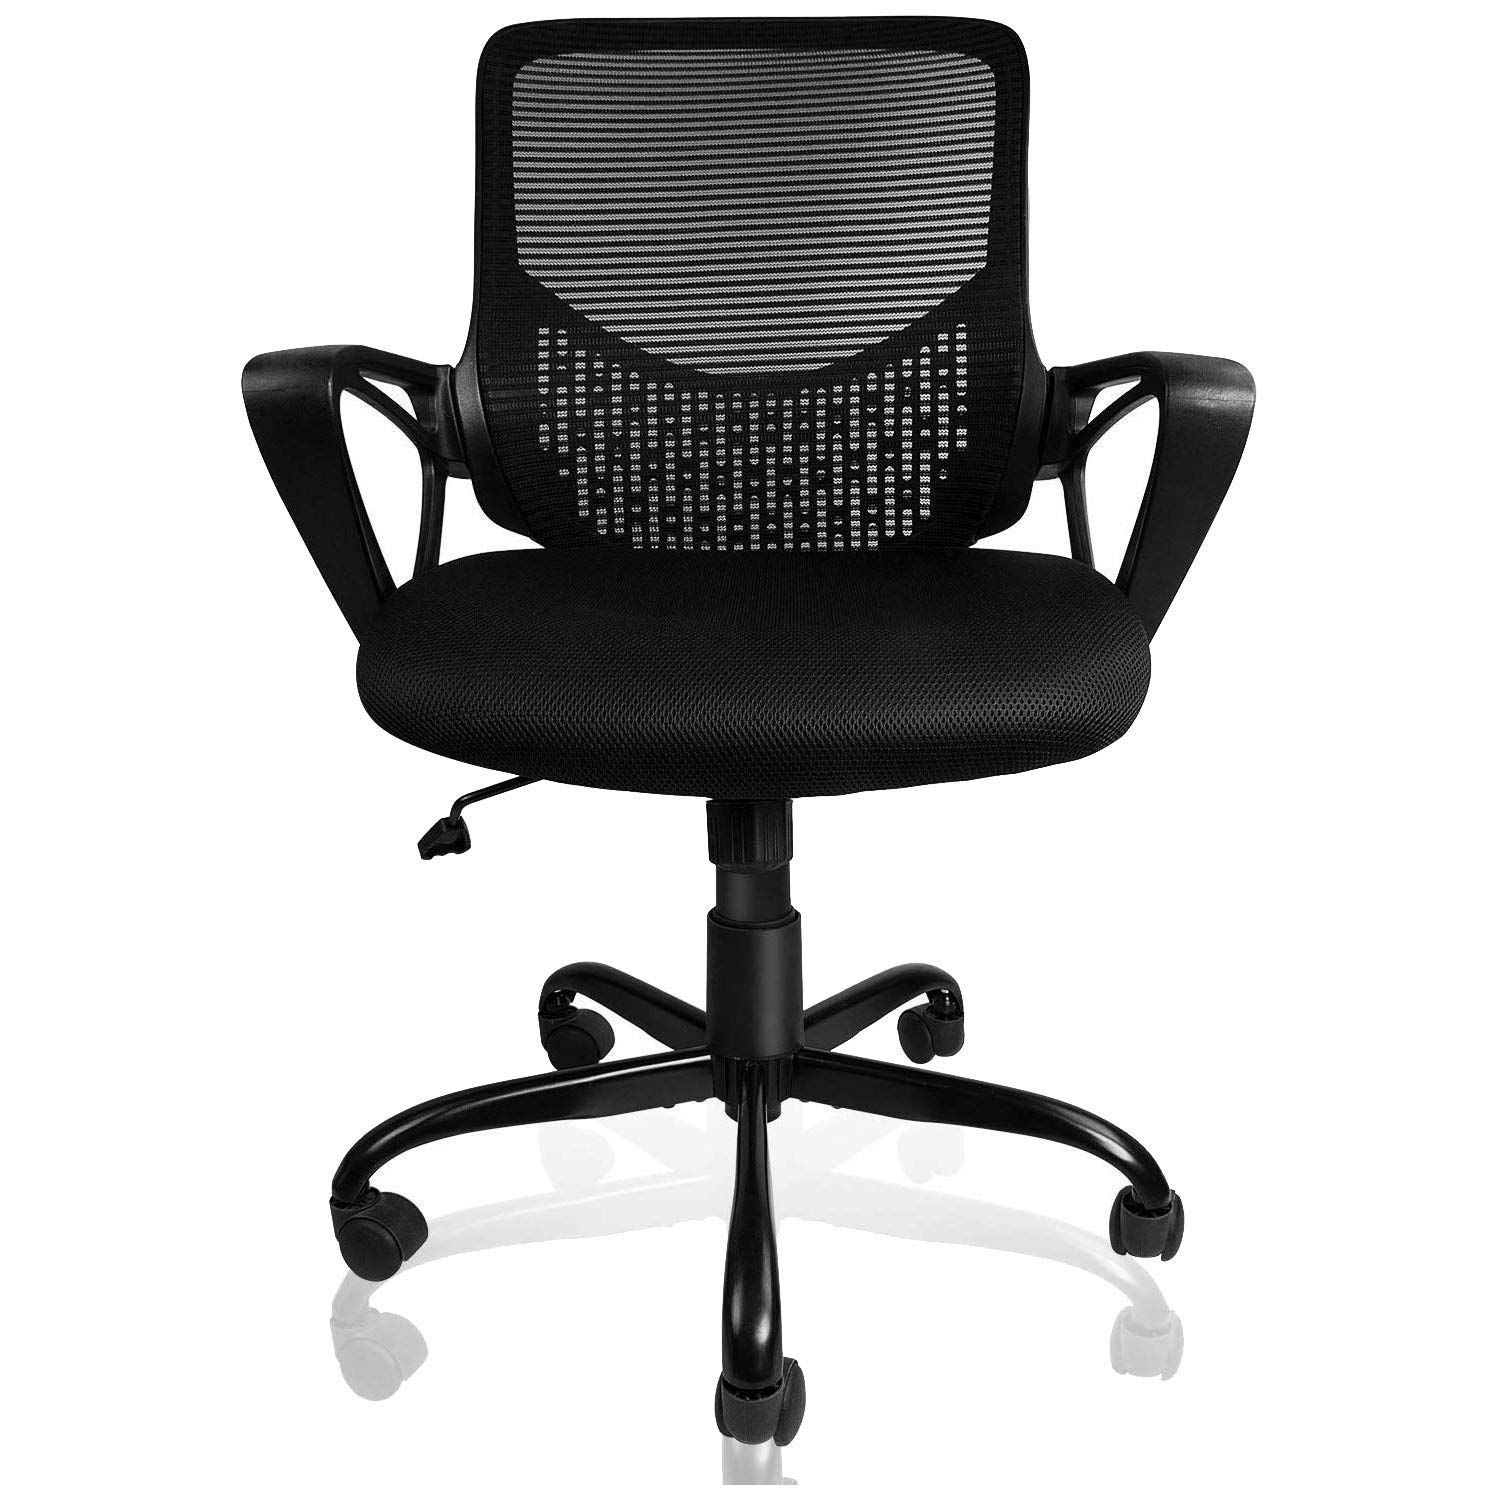 SmugOffice Office Chair, Computer Desk Chairs for